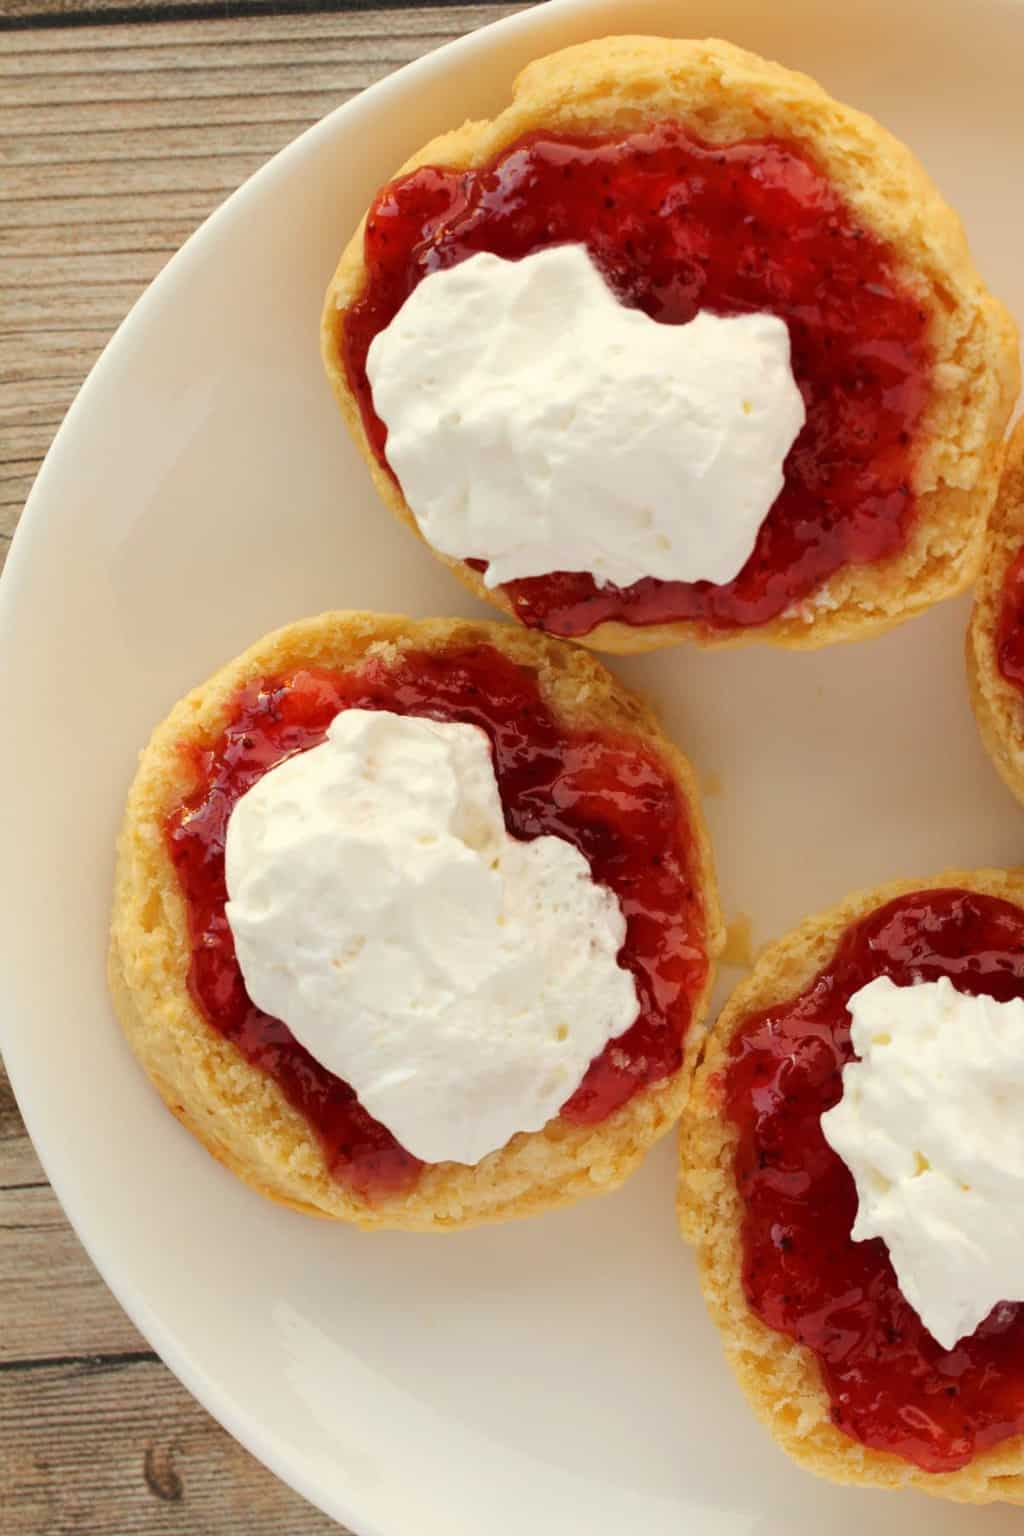 Vegan Scones topped with strawberry jam and vegan whipped cream on a white plate.